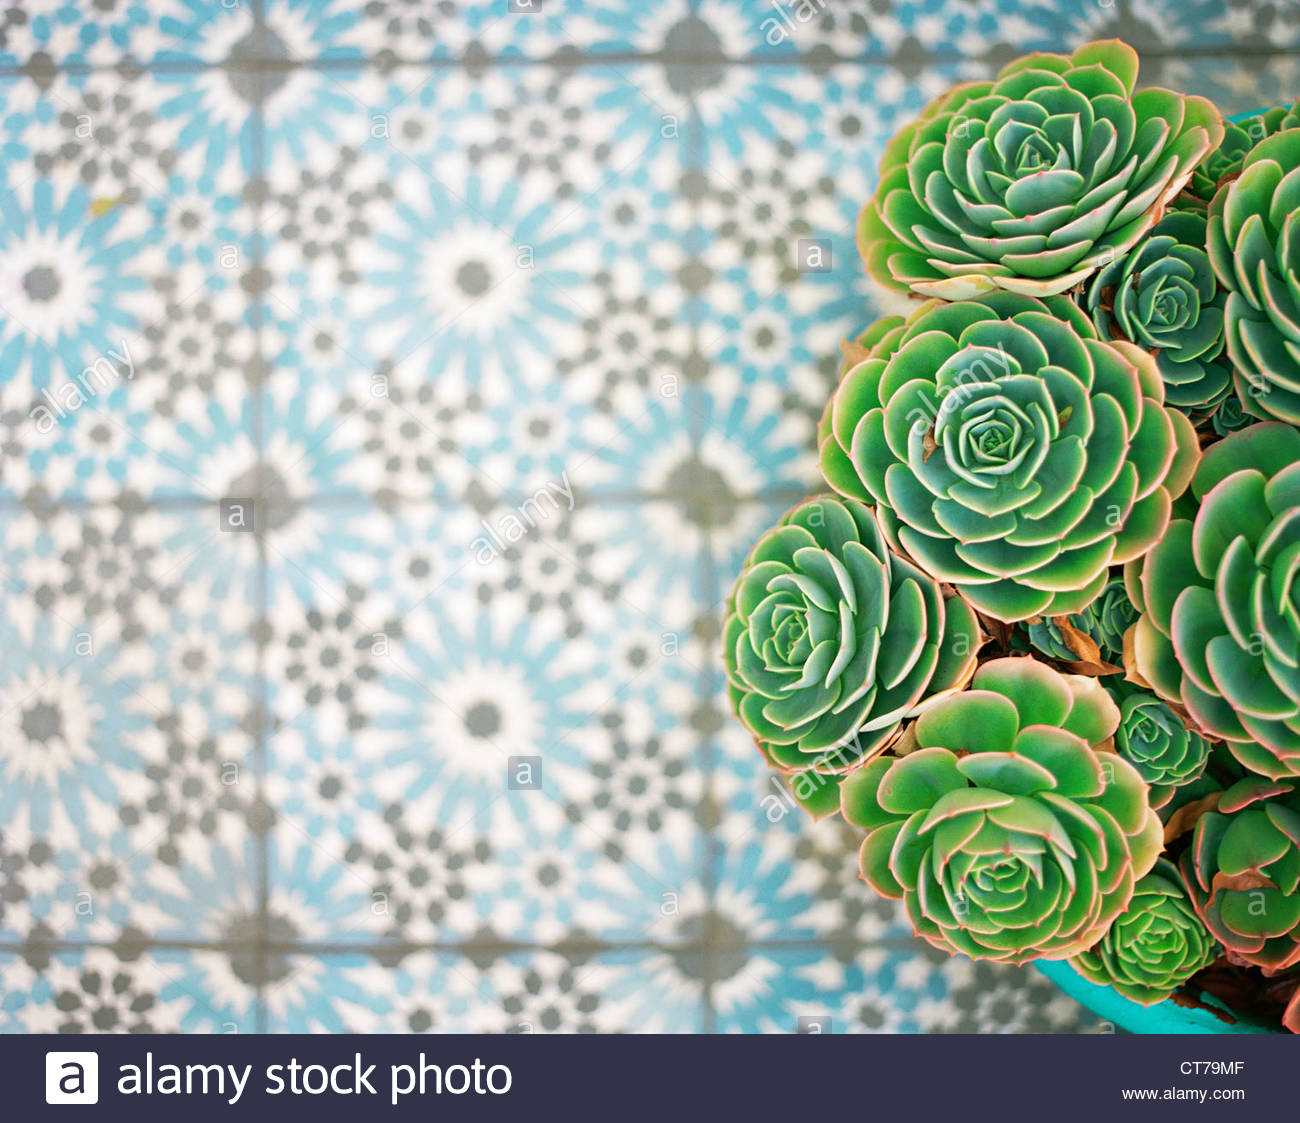 Overhead view of cacti on tiled floor - Stock Image